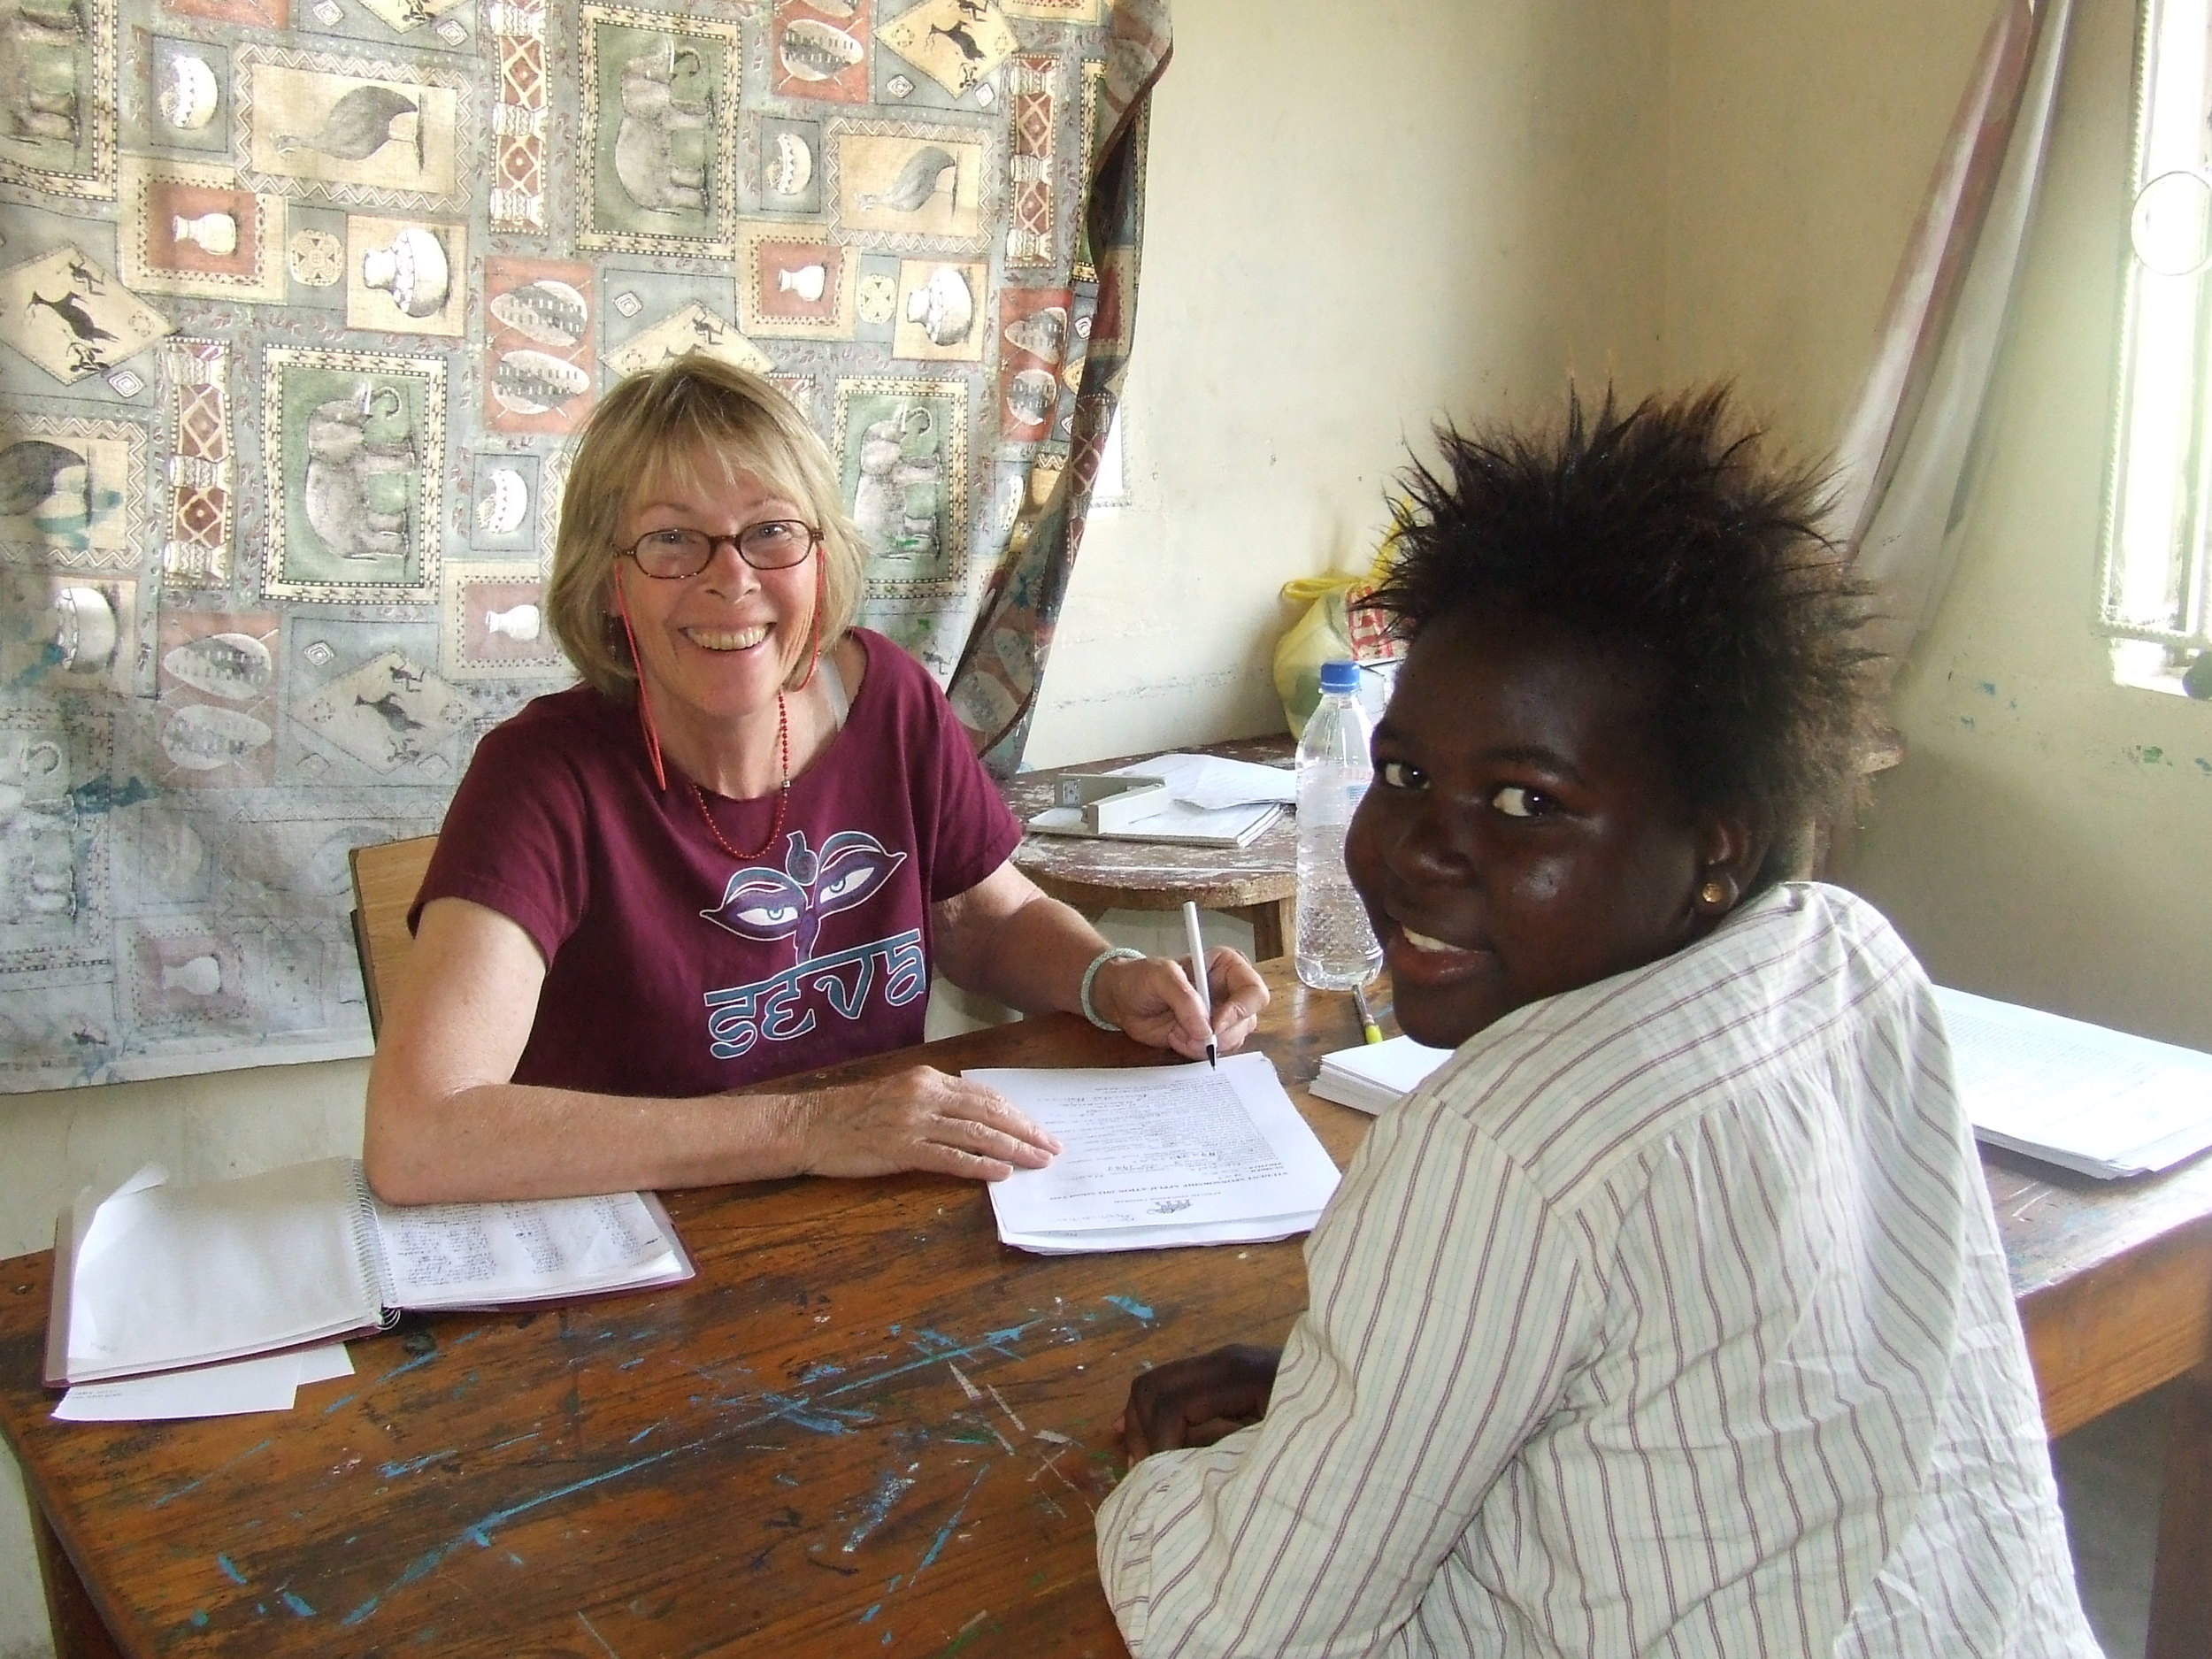 Sally, an AEP volunteer, during the interview process.